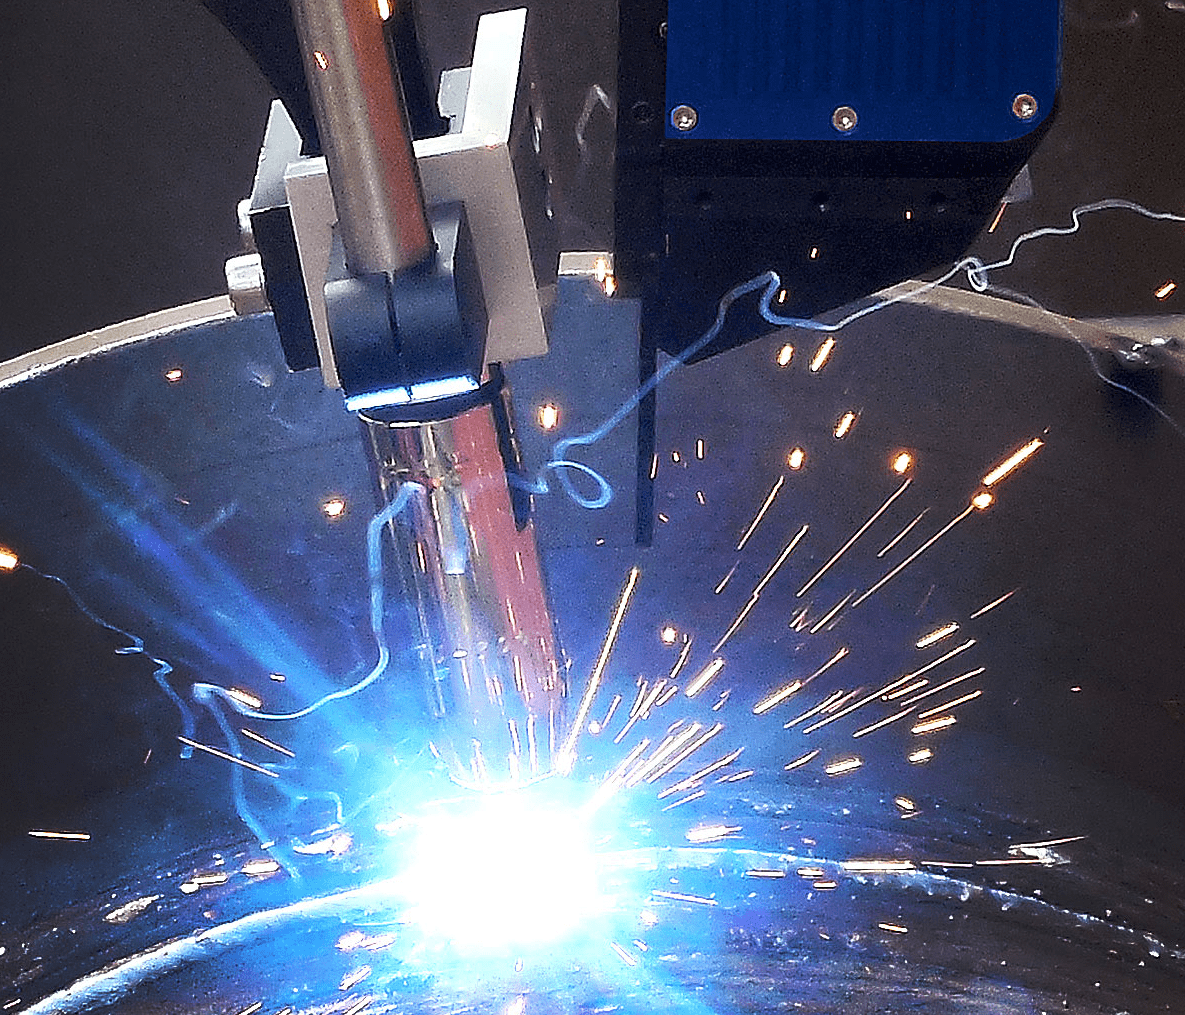 Joint tracking systems for MIG/MAG Welding Robots - EDR torches